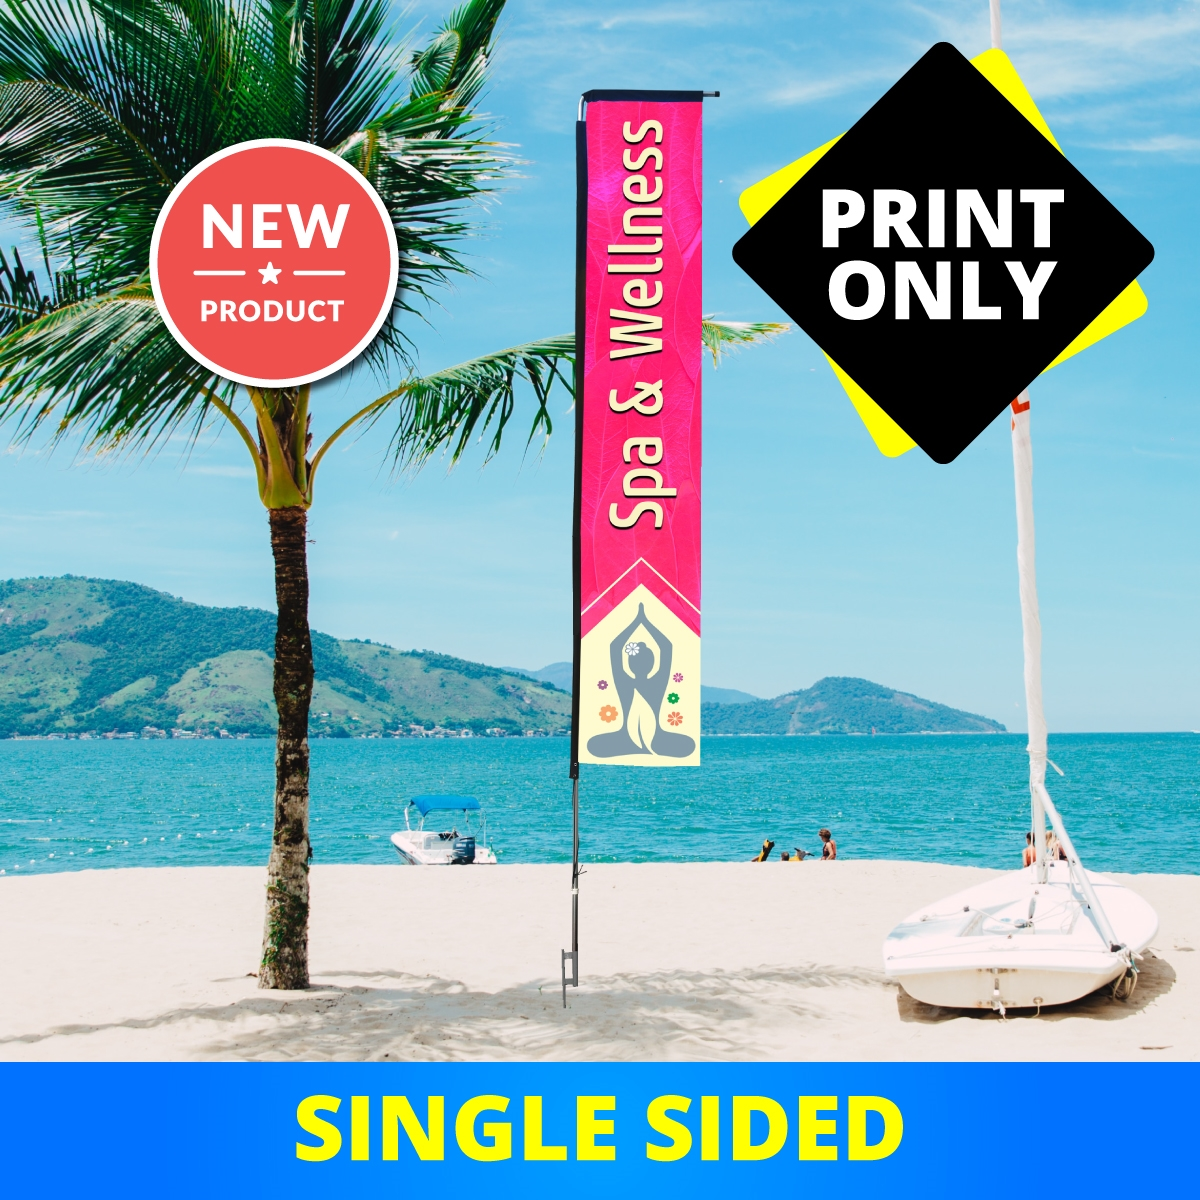 Premium Rectangle Flag 14.5' Single Sided - PRINT ONLY